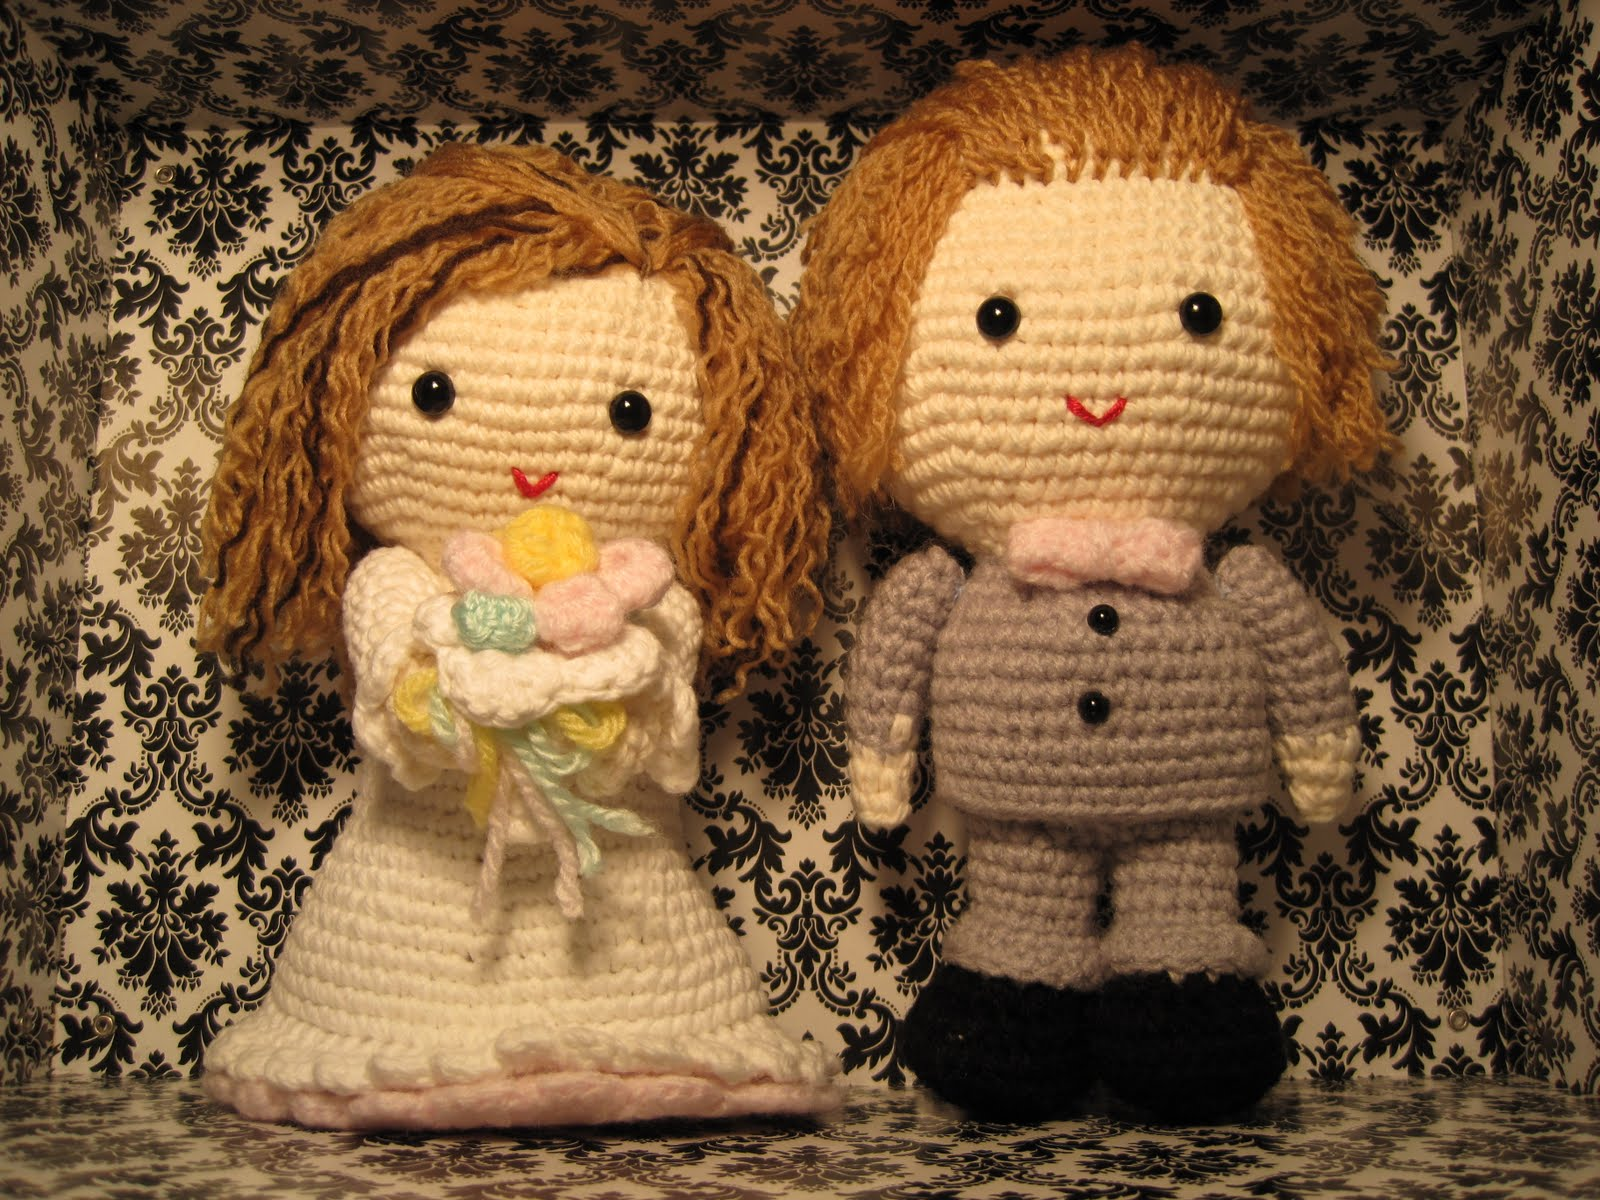 CROCHET PATTERN WEDDING DOVES BRIDE GROOM AFGHAN CROSS STITCH